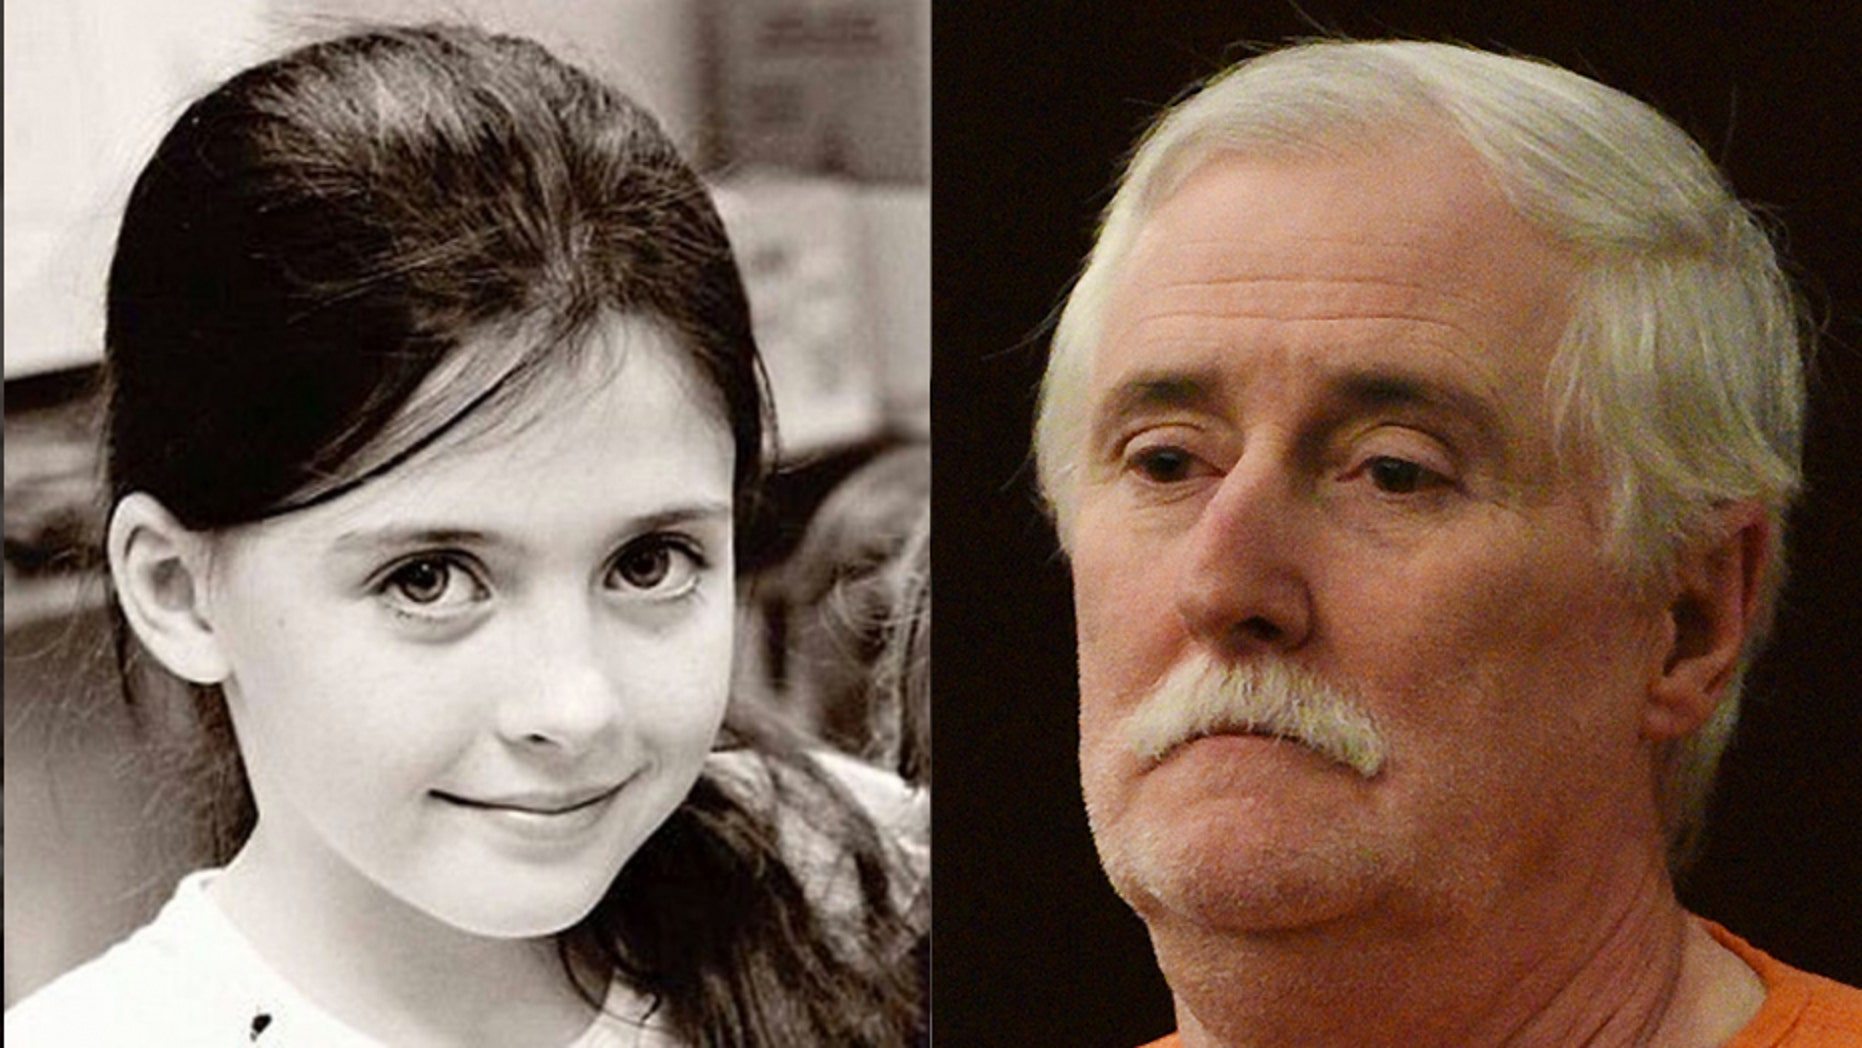 Donald Smith, 62, was sentenced to death after a jury found him guilty of first-degree murder, kidnapping and rape in the 2013 death of Cherish Perrywinkle.